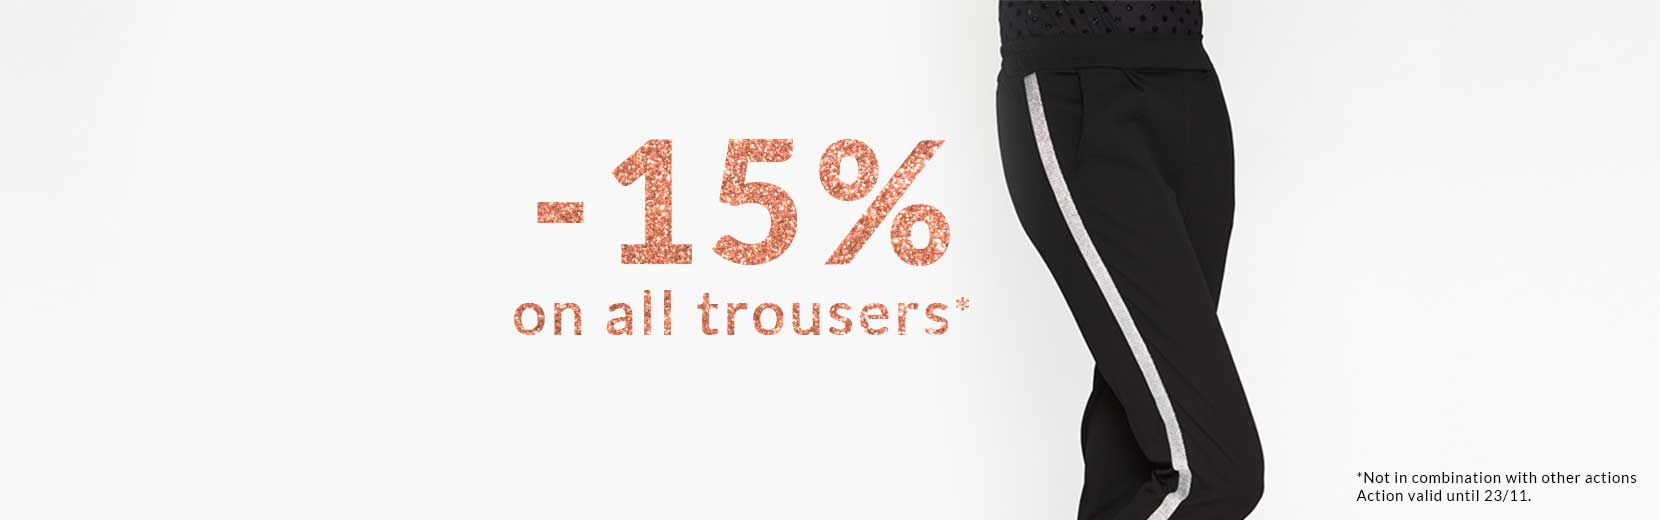 Promo on all trousers